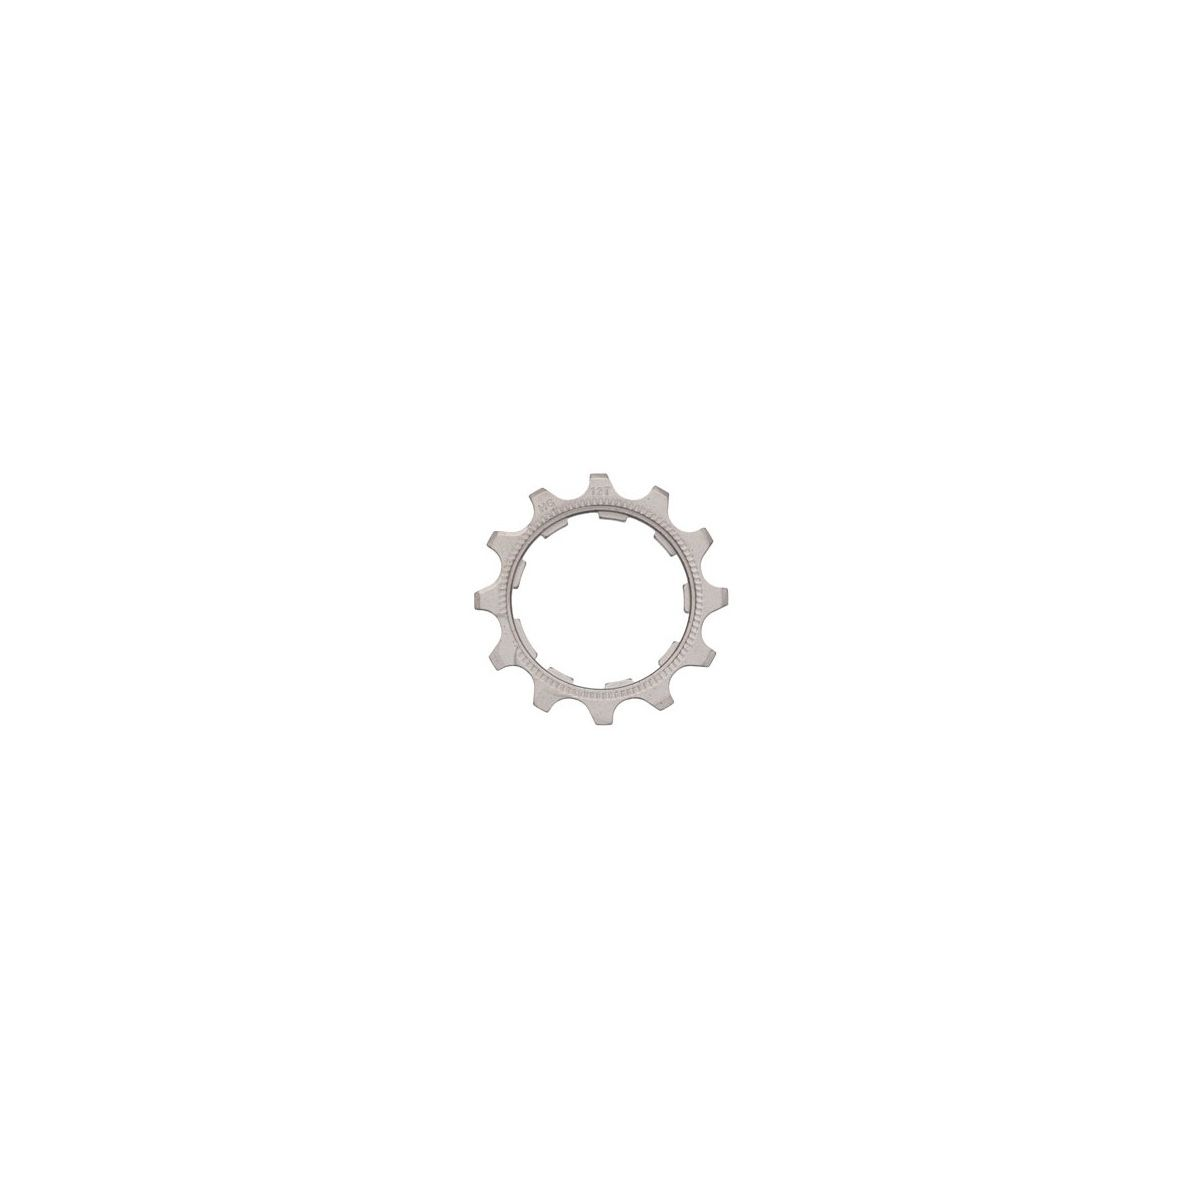 Ultegra/Dura Ace CS-6600/6700/7800/7900 10-speed, 12-tooth replacement sprocket